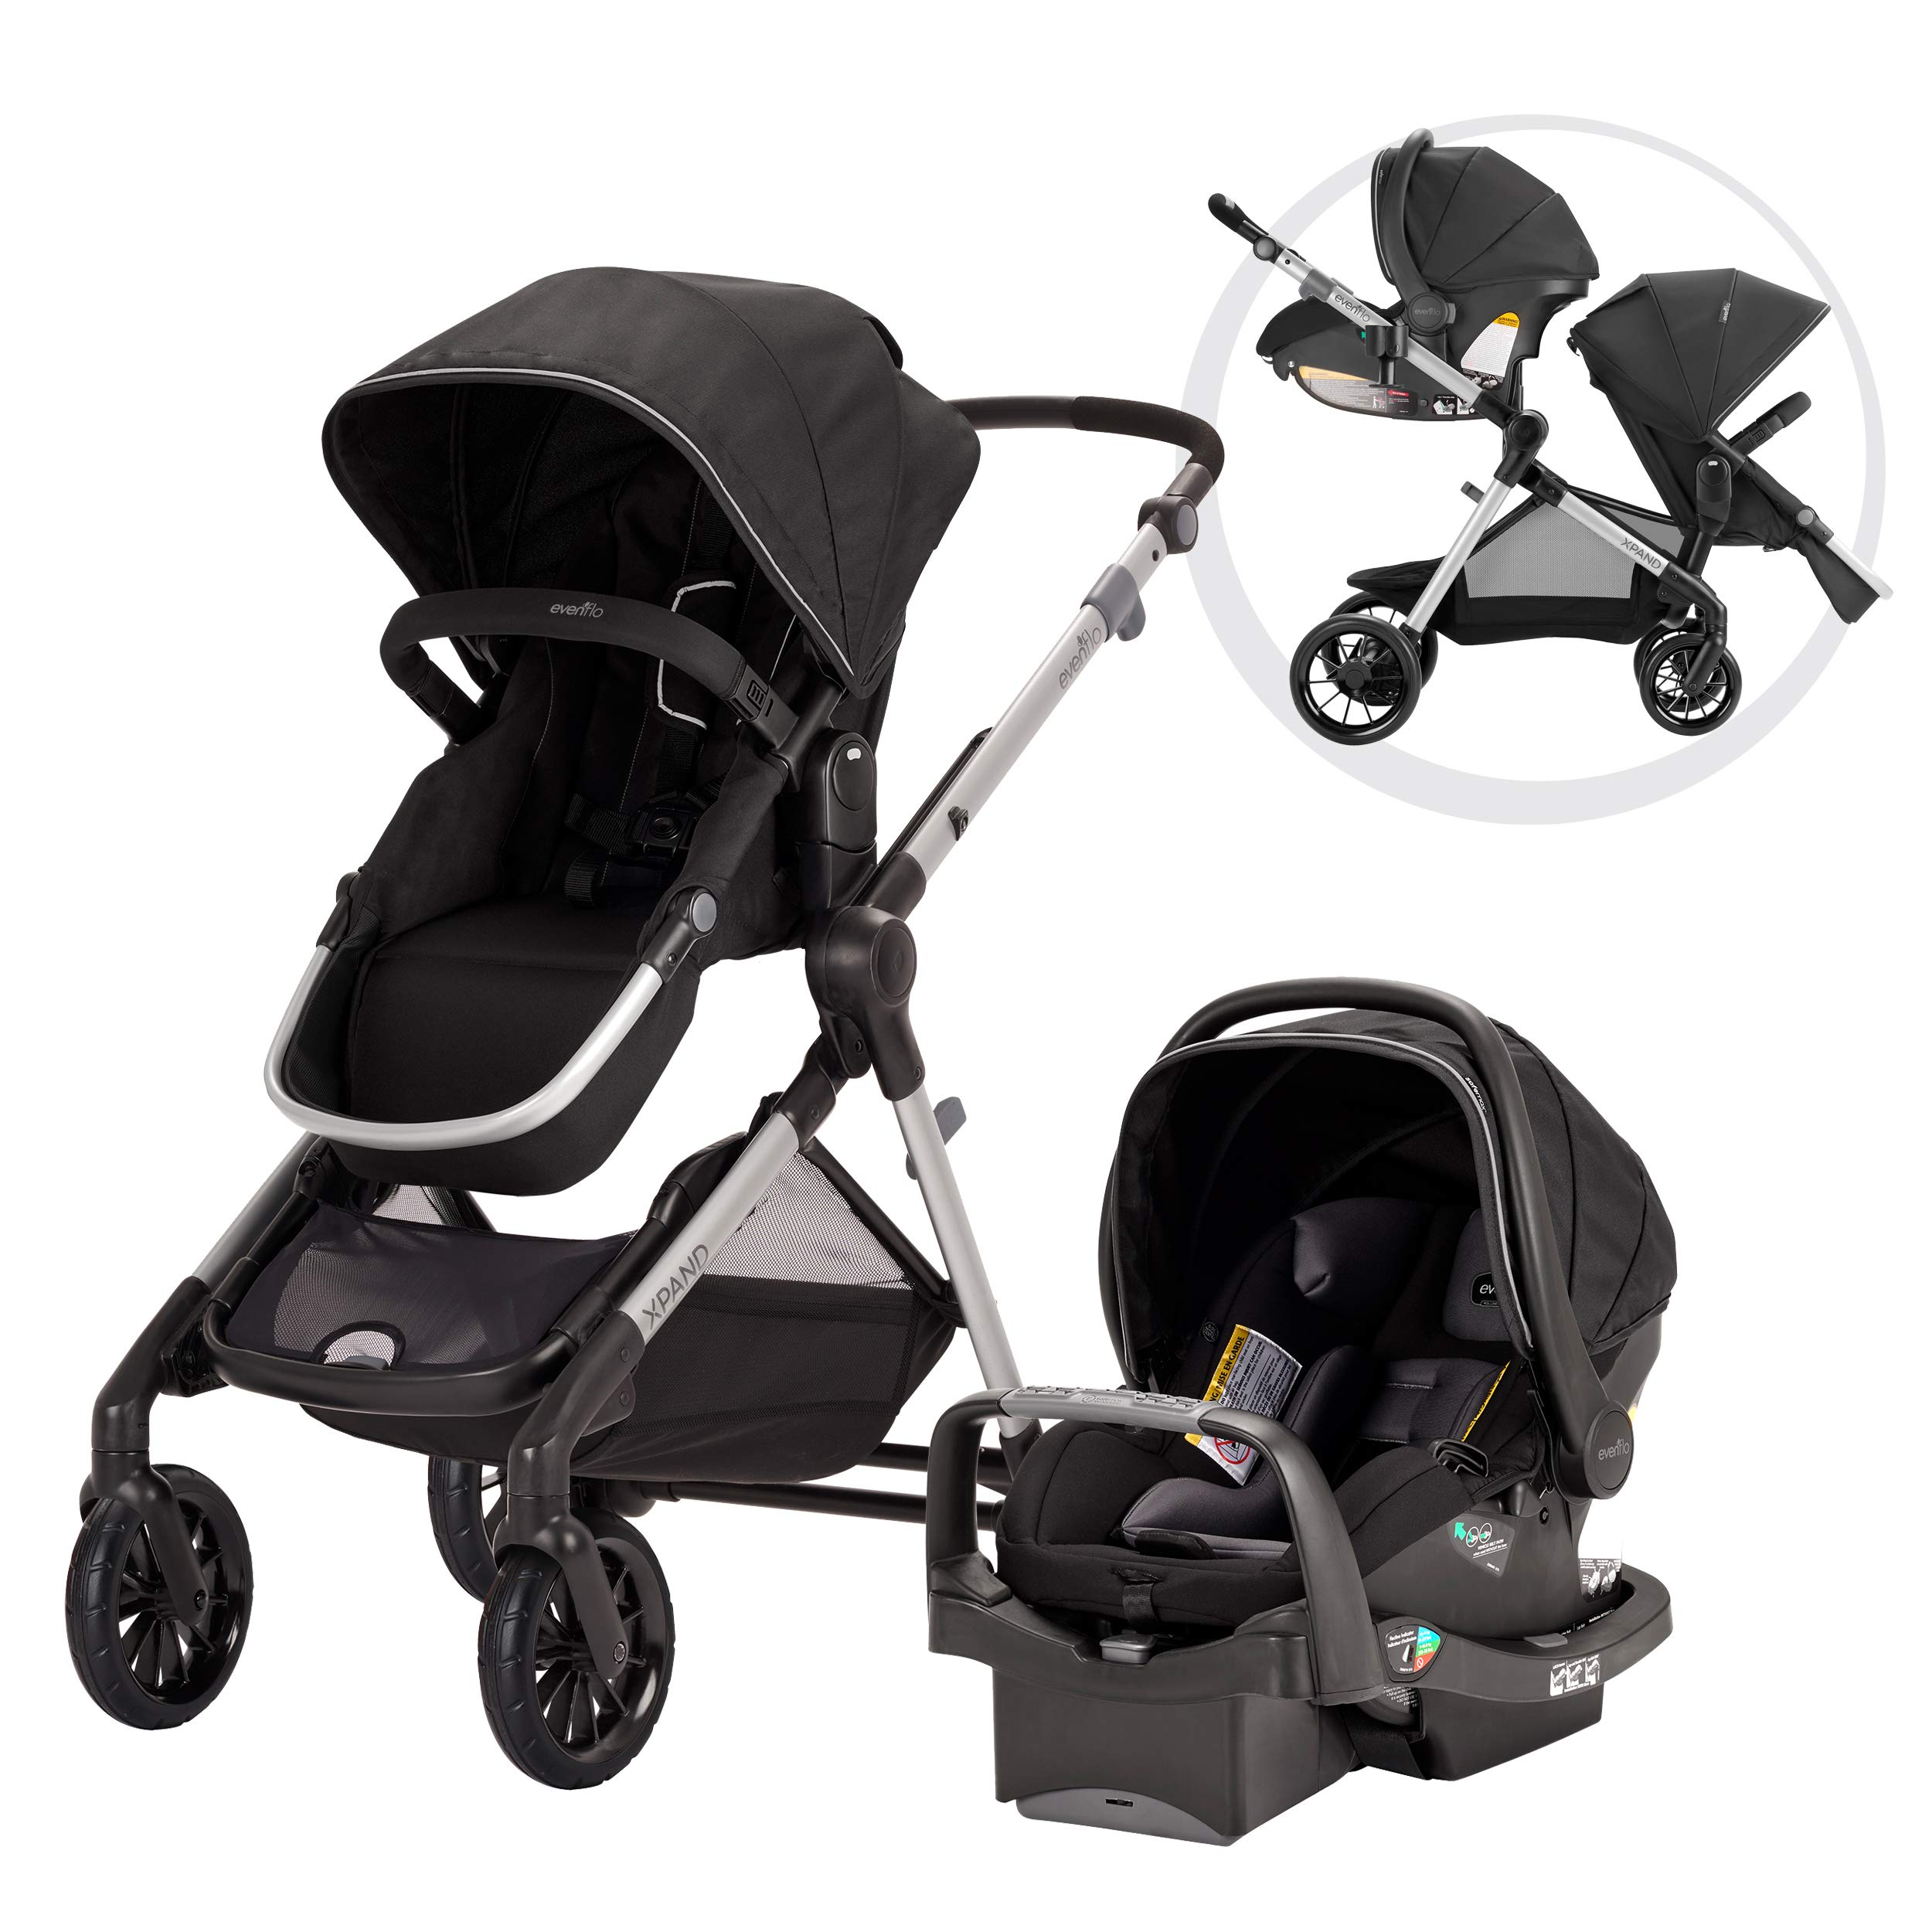 Evenflo Stroller Configurations Extra Large Construction